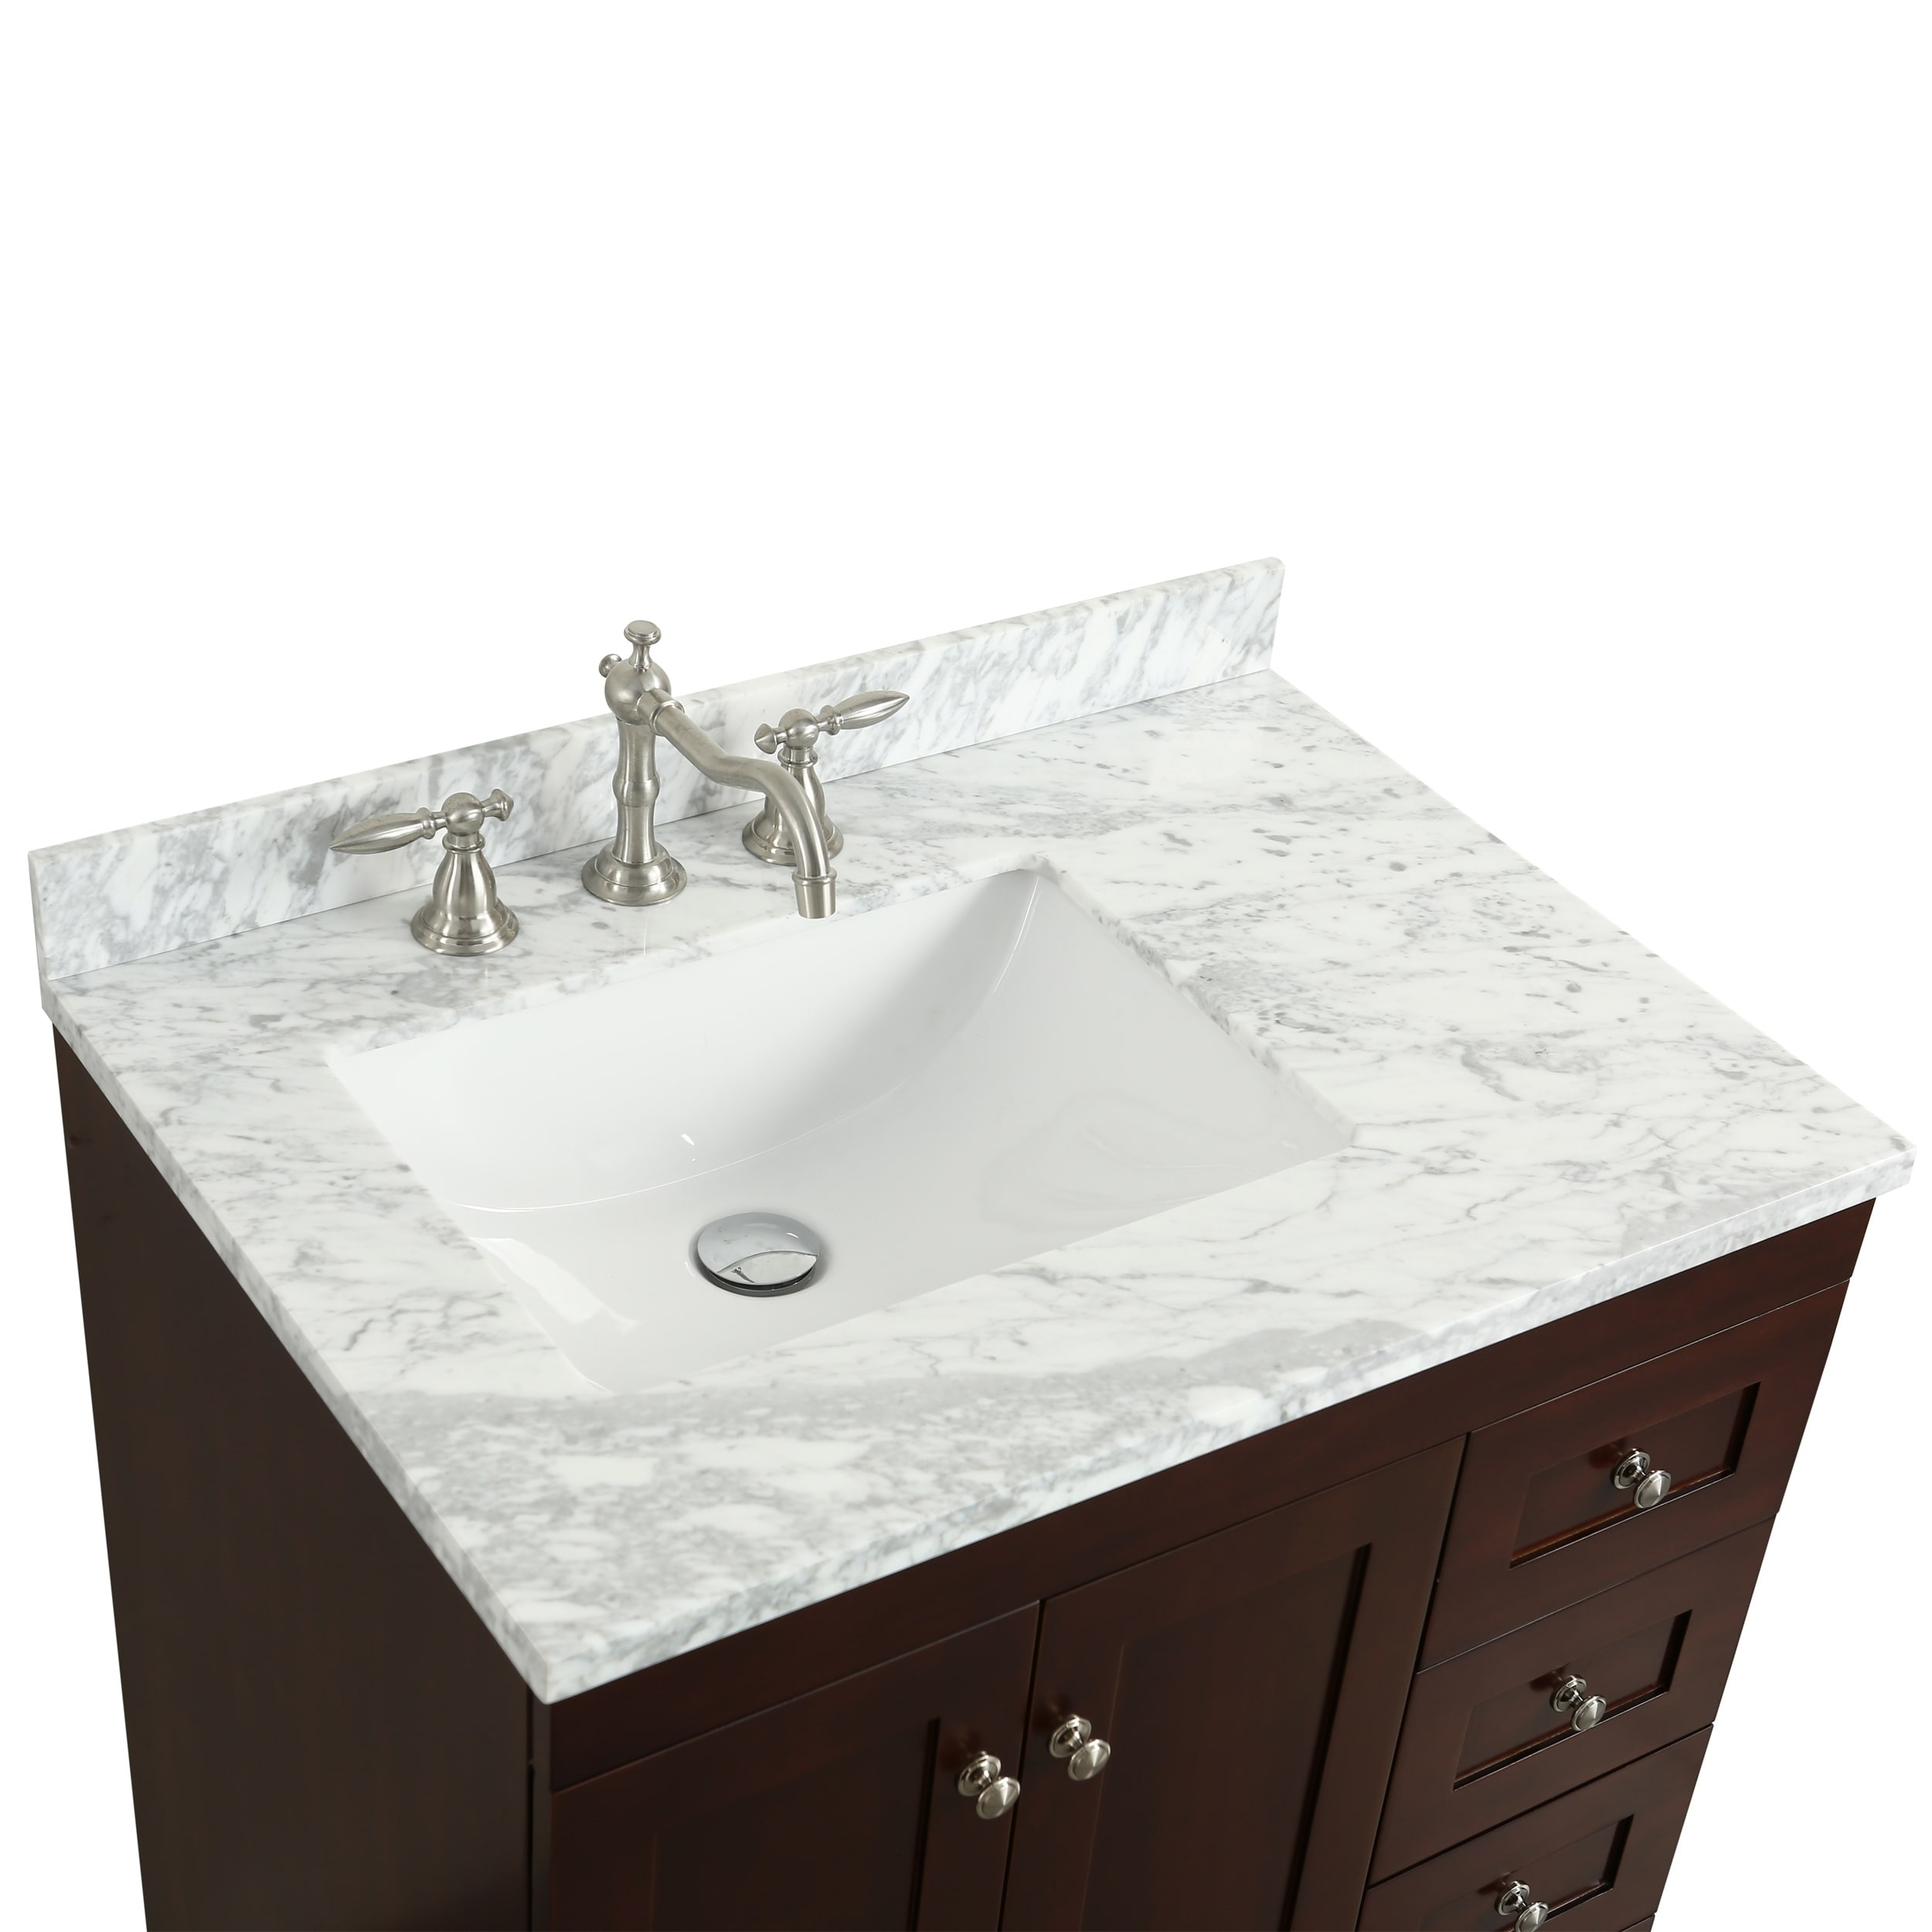 eviva Acclaim C. Teak with White Cararra Marble Countertop 30-inch ...